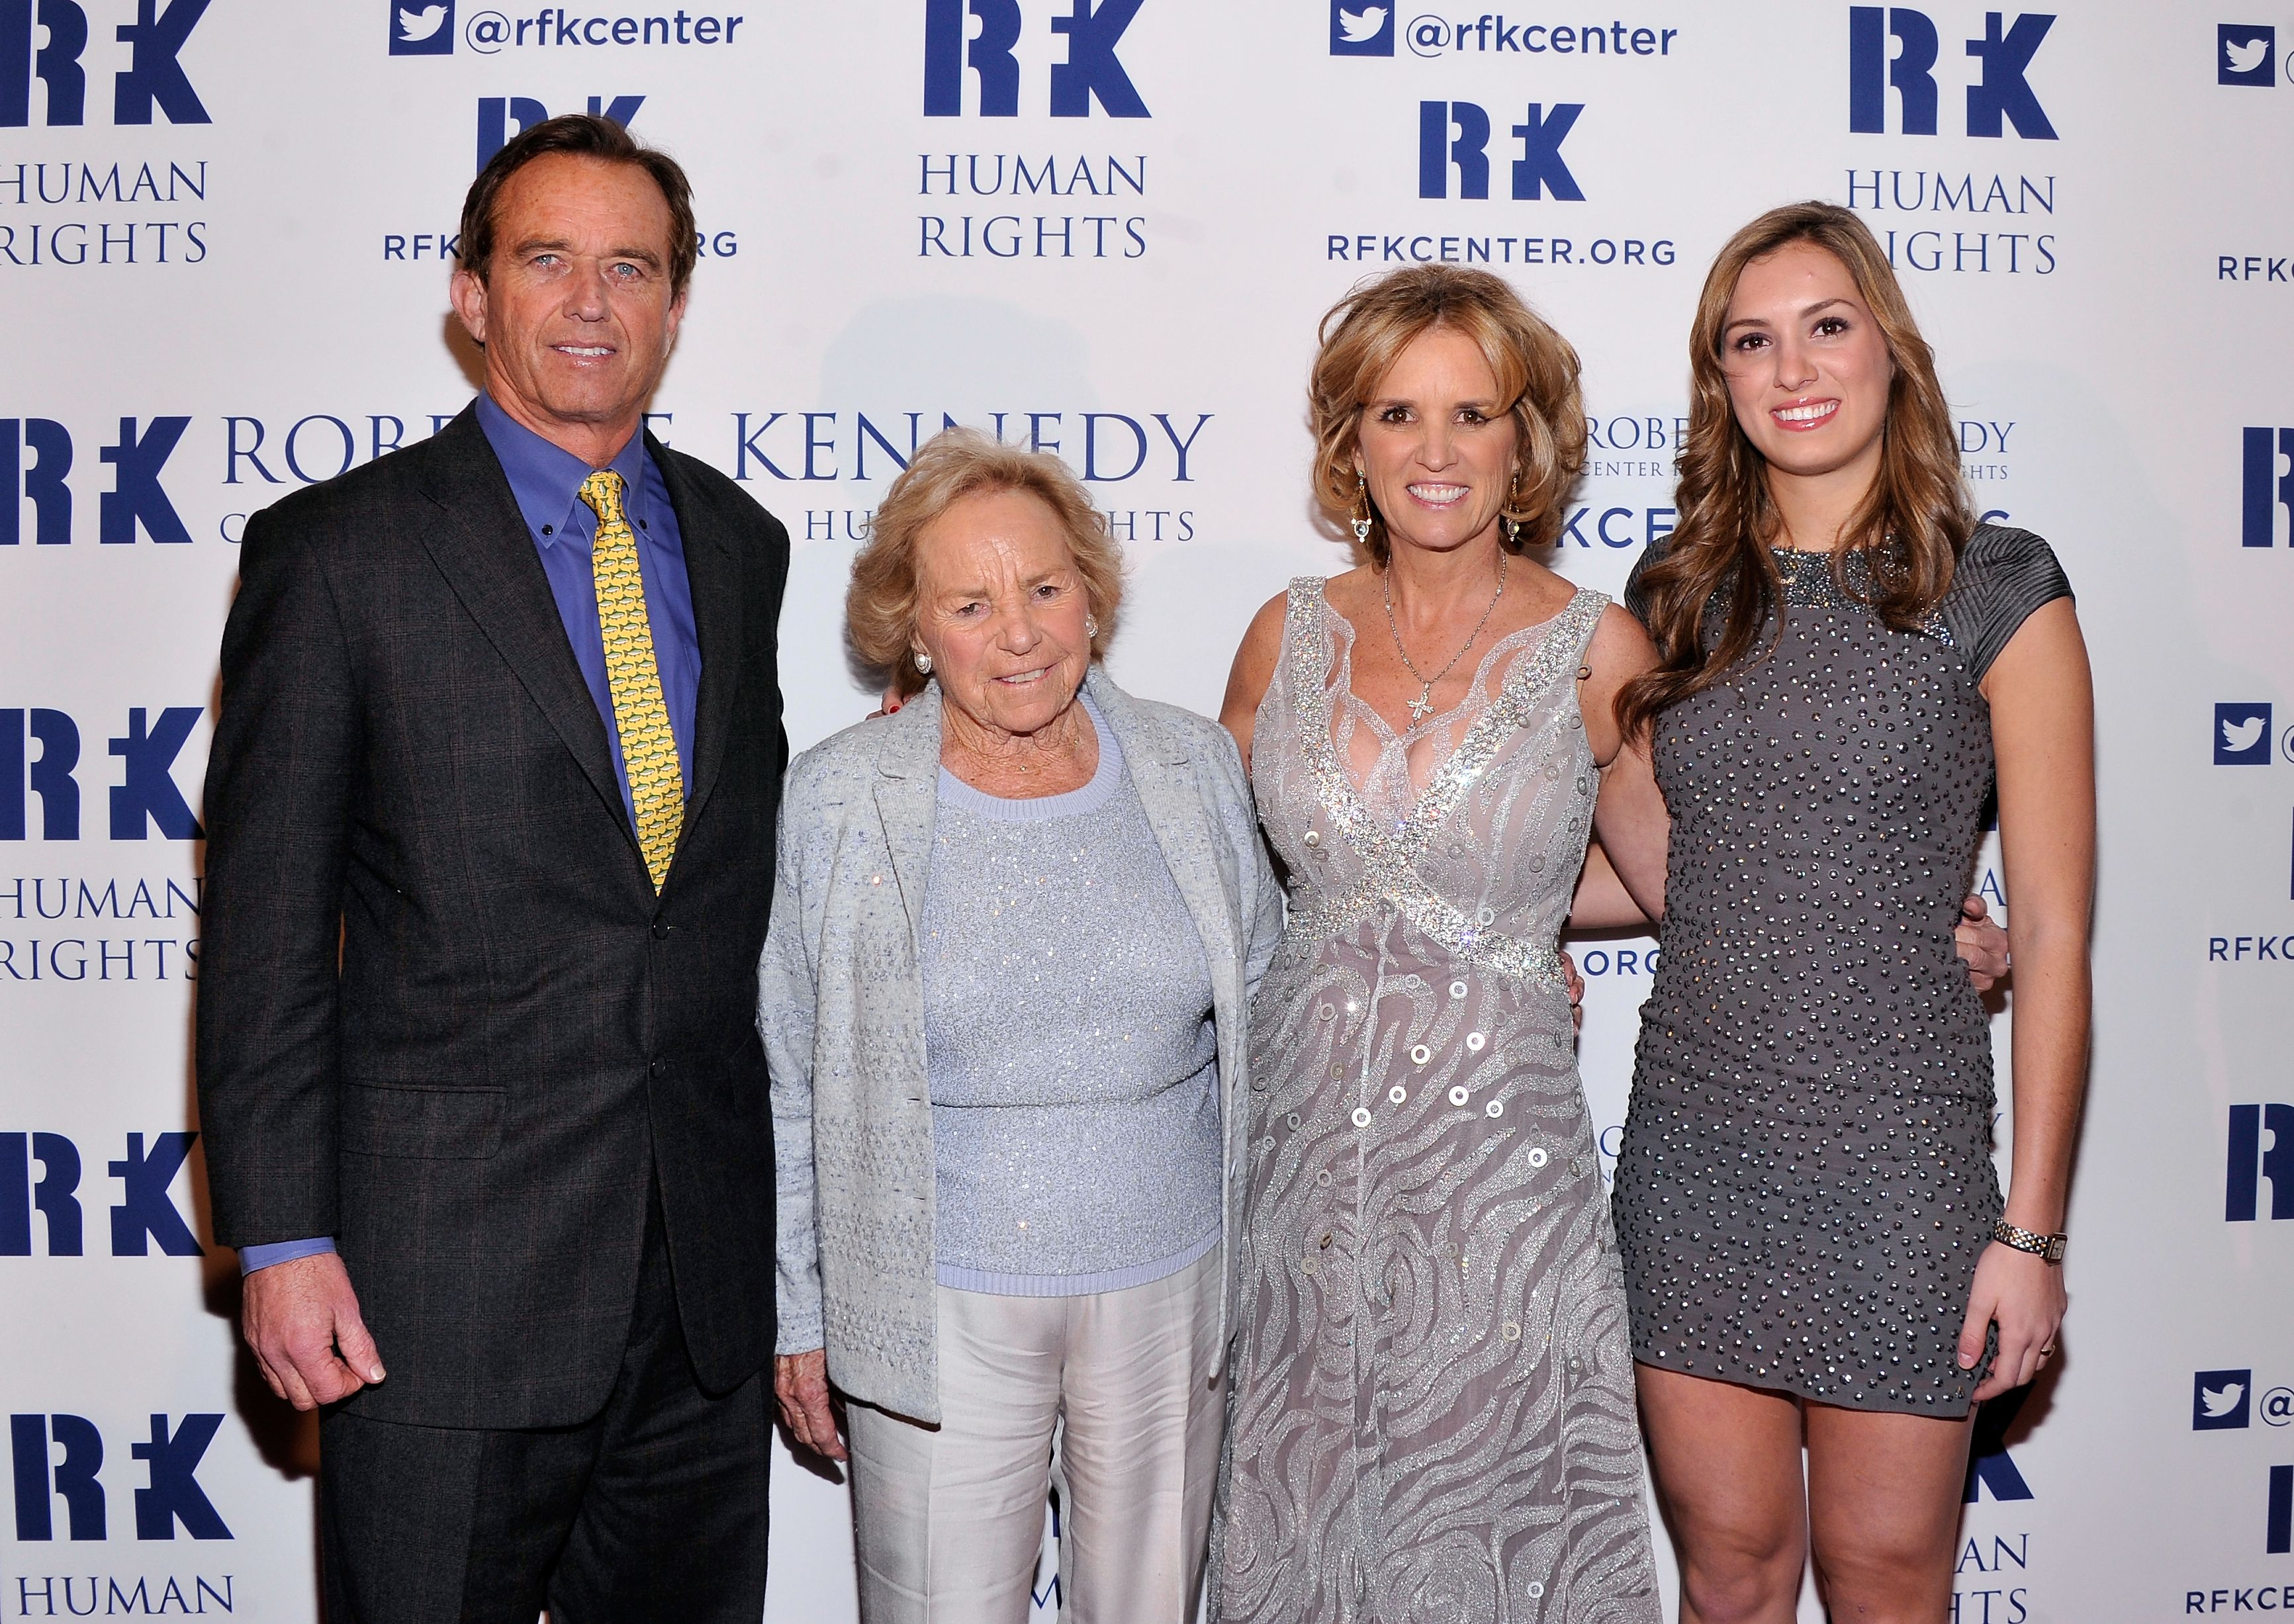 Robert F. Kennedy Jr., Ethel Kennedy, Kerry Kennedy, and Mariah Kennedy Cuomo during the Robert F. Kennedy Center For Justice And Human Rights 2013 Ripple Of Hope Awards Dinner at New York Hilton Midtown on December 11, 2013 in New York City. | Source: Getty Images